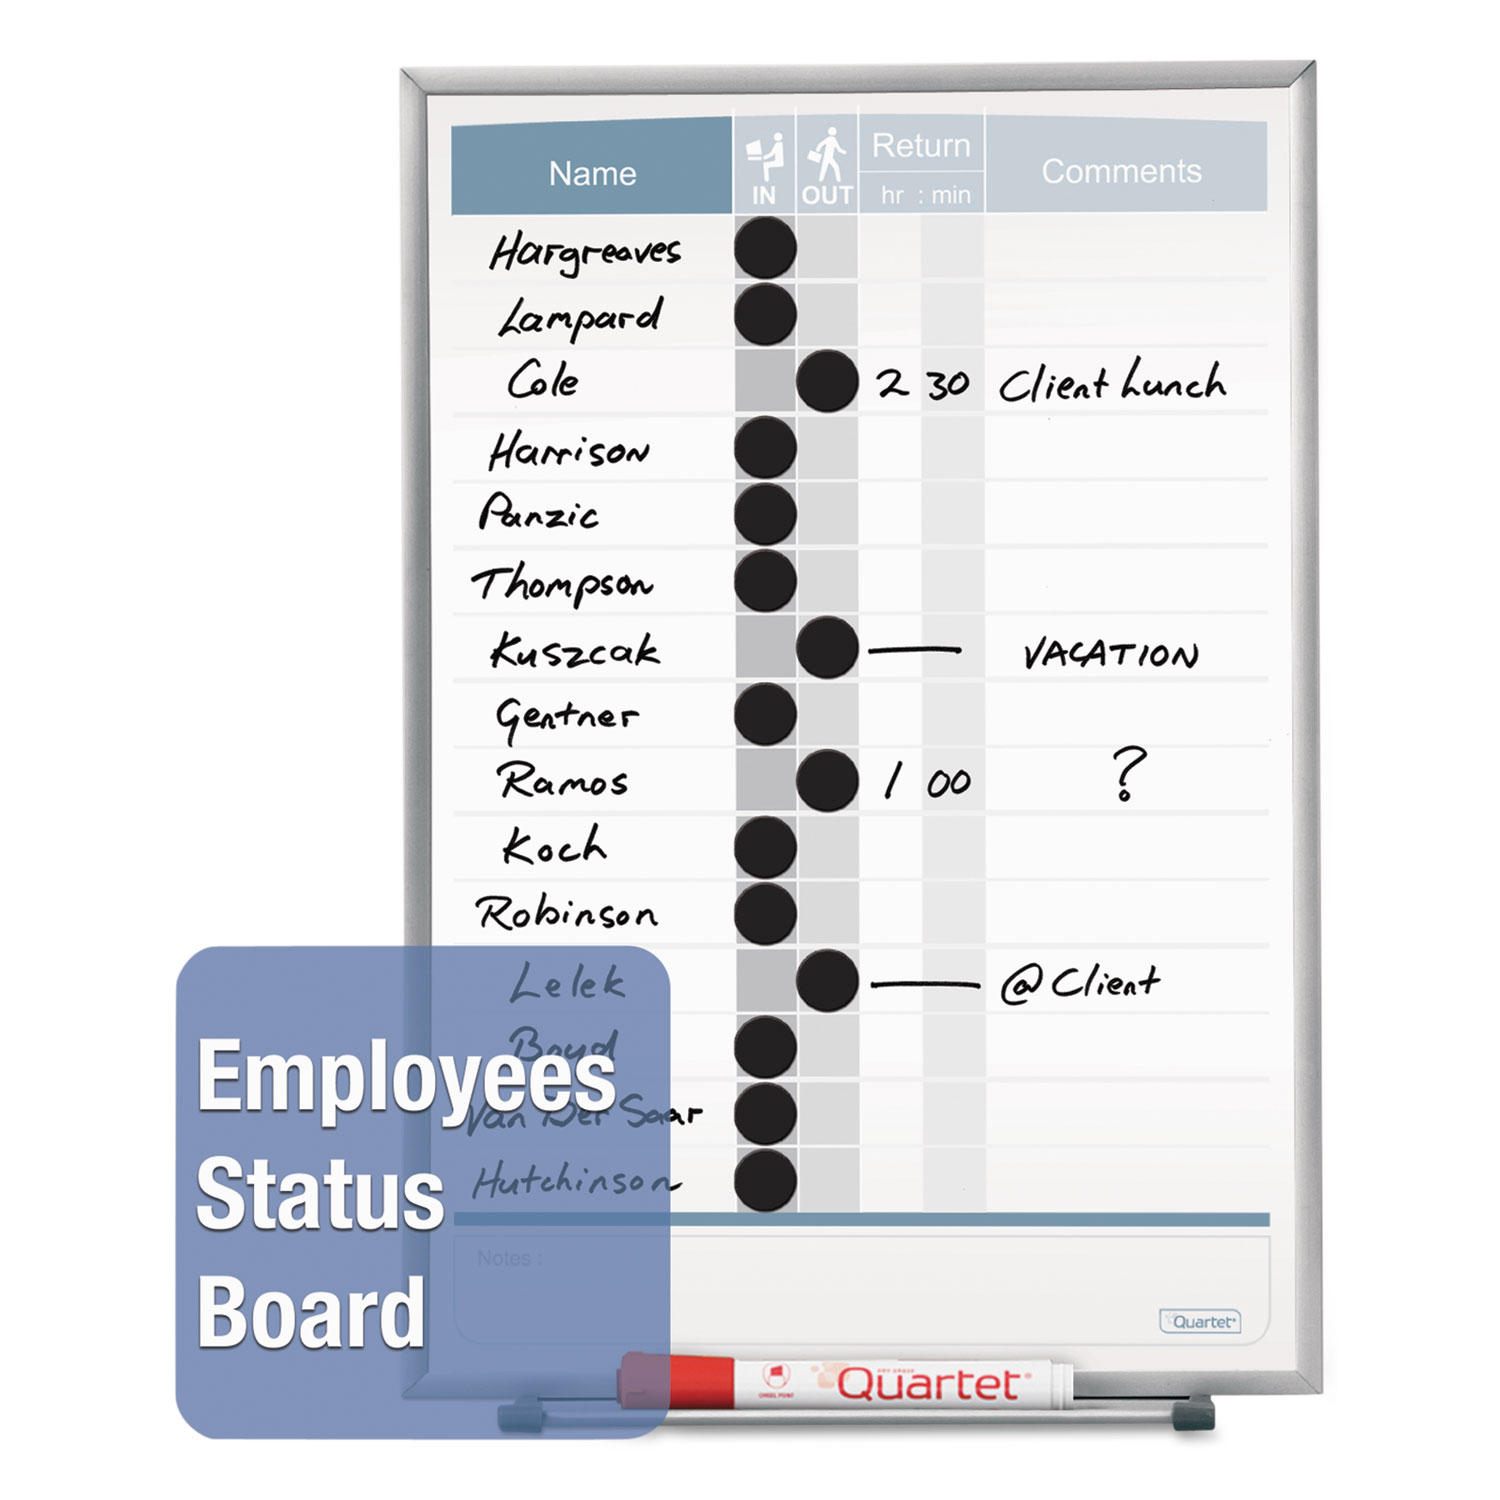 Vertical Matrix Employee Tracking Board by Quartet